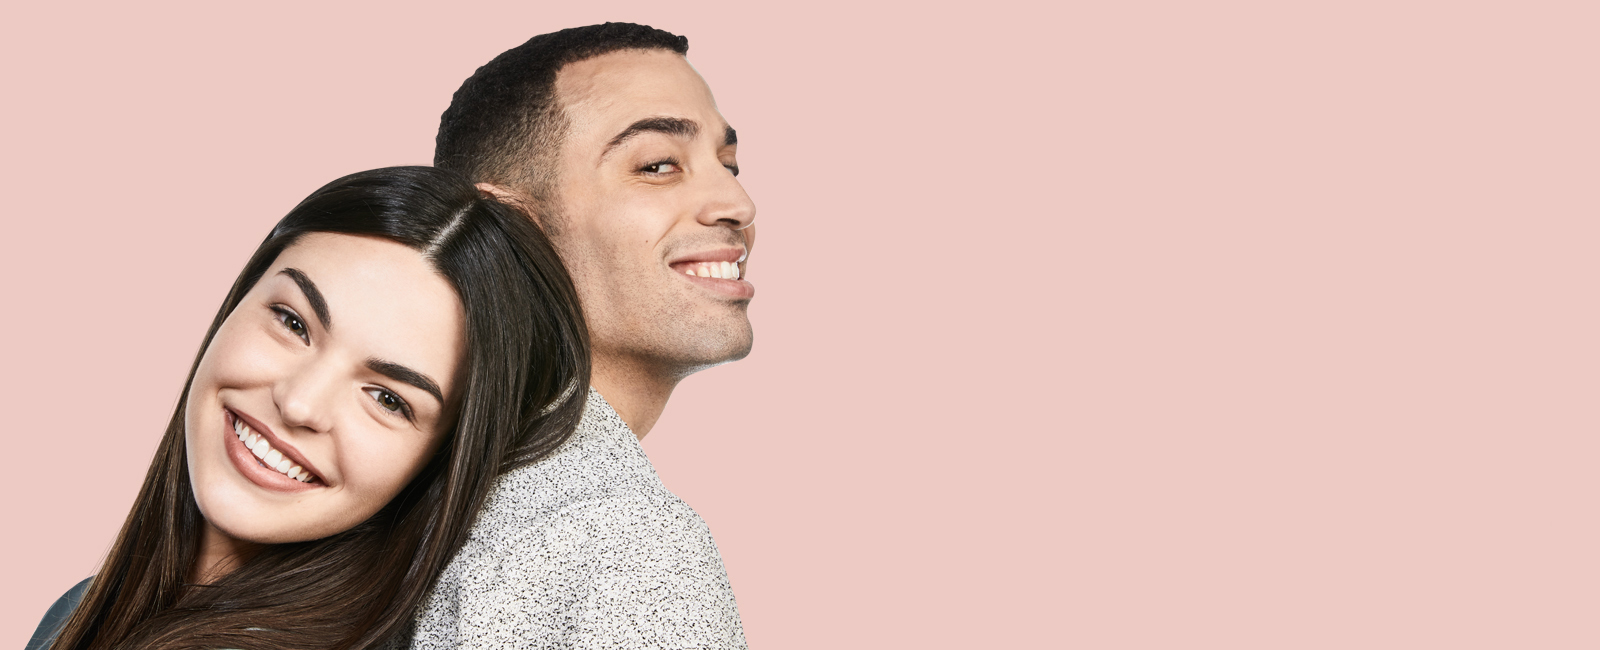 Couple smiling with pink background